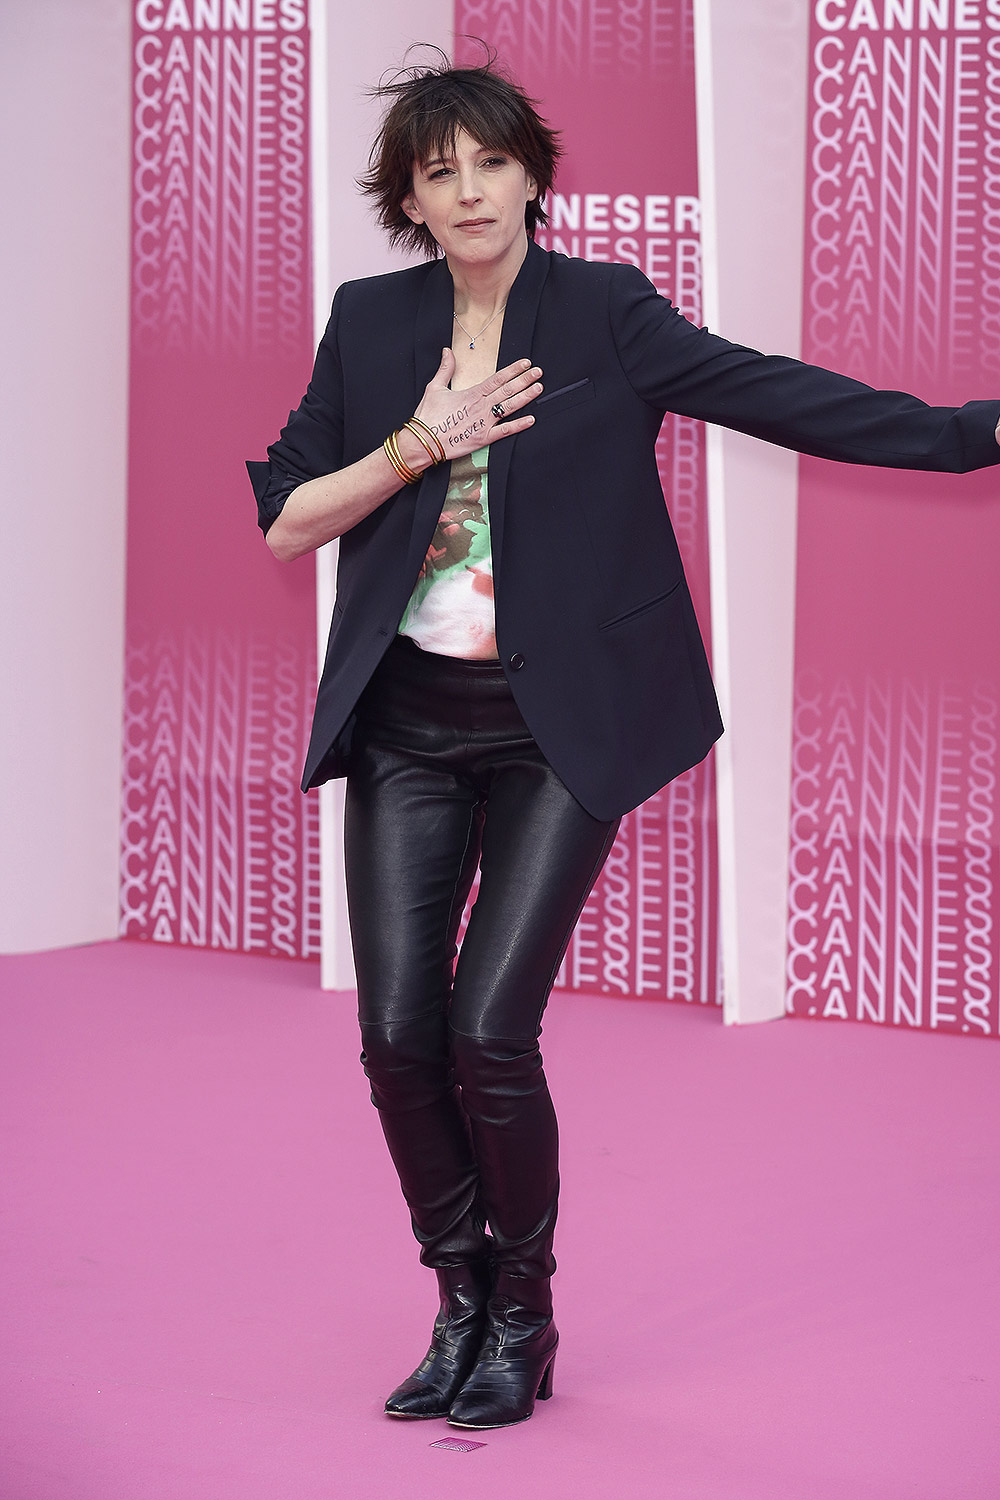 Florence Loiret Caille attends 2018 CanneSeries Opening ...